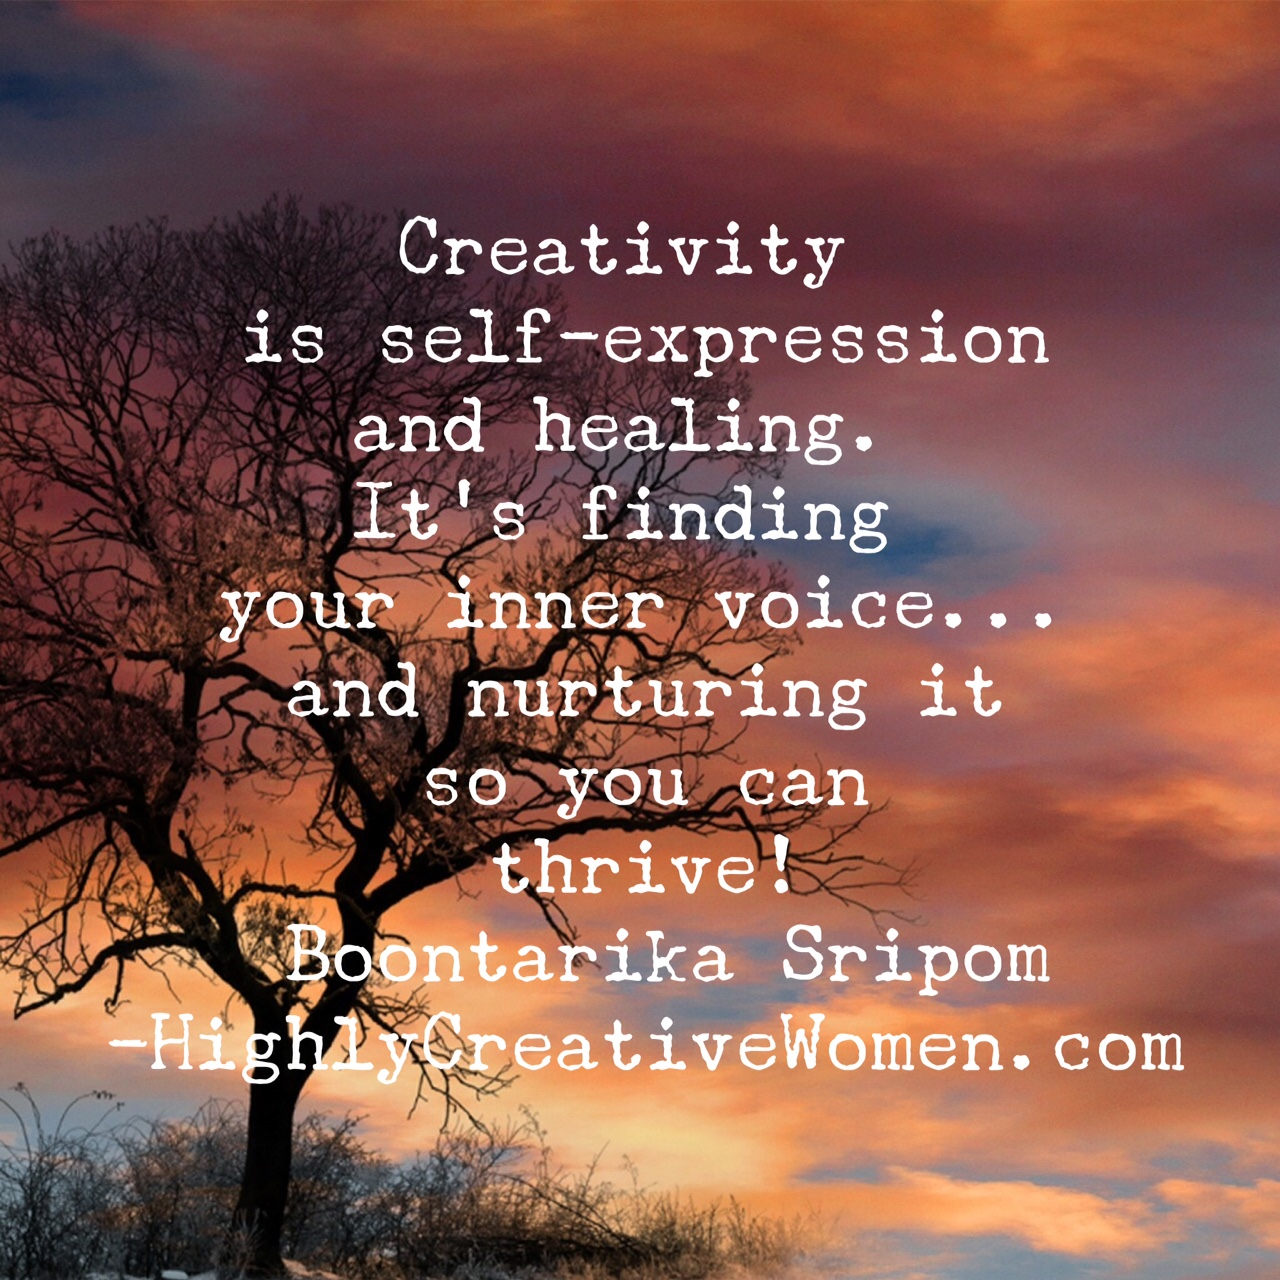 Creativity is self-expression and healing